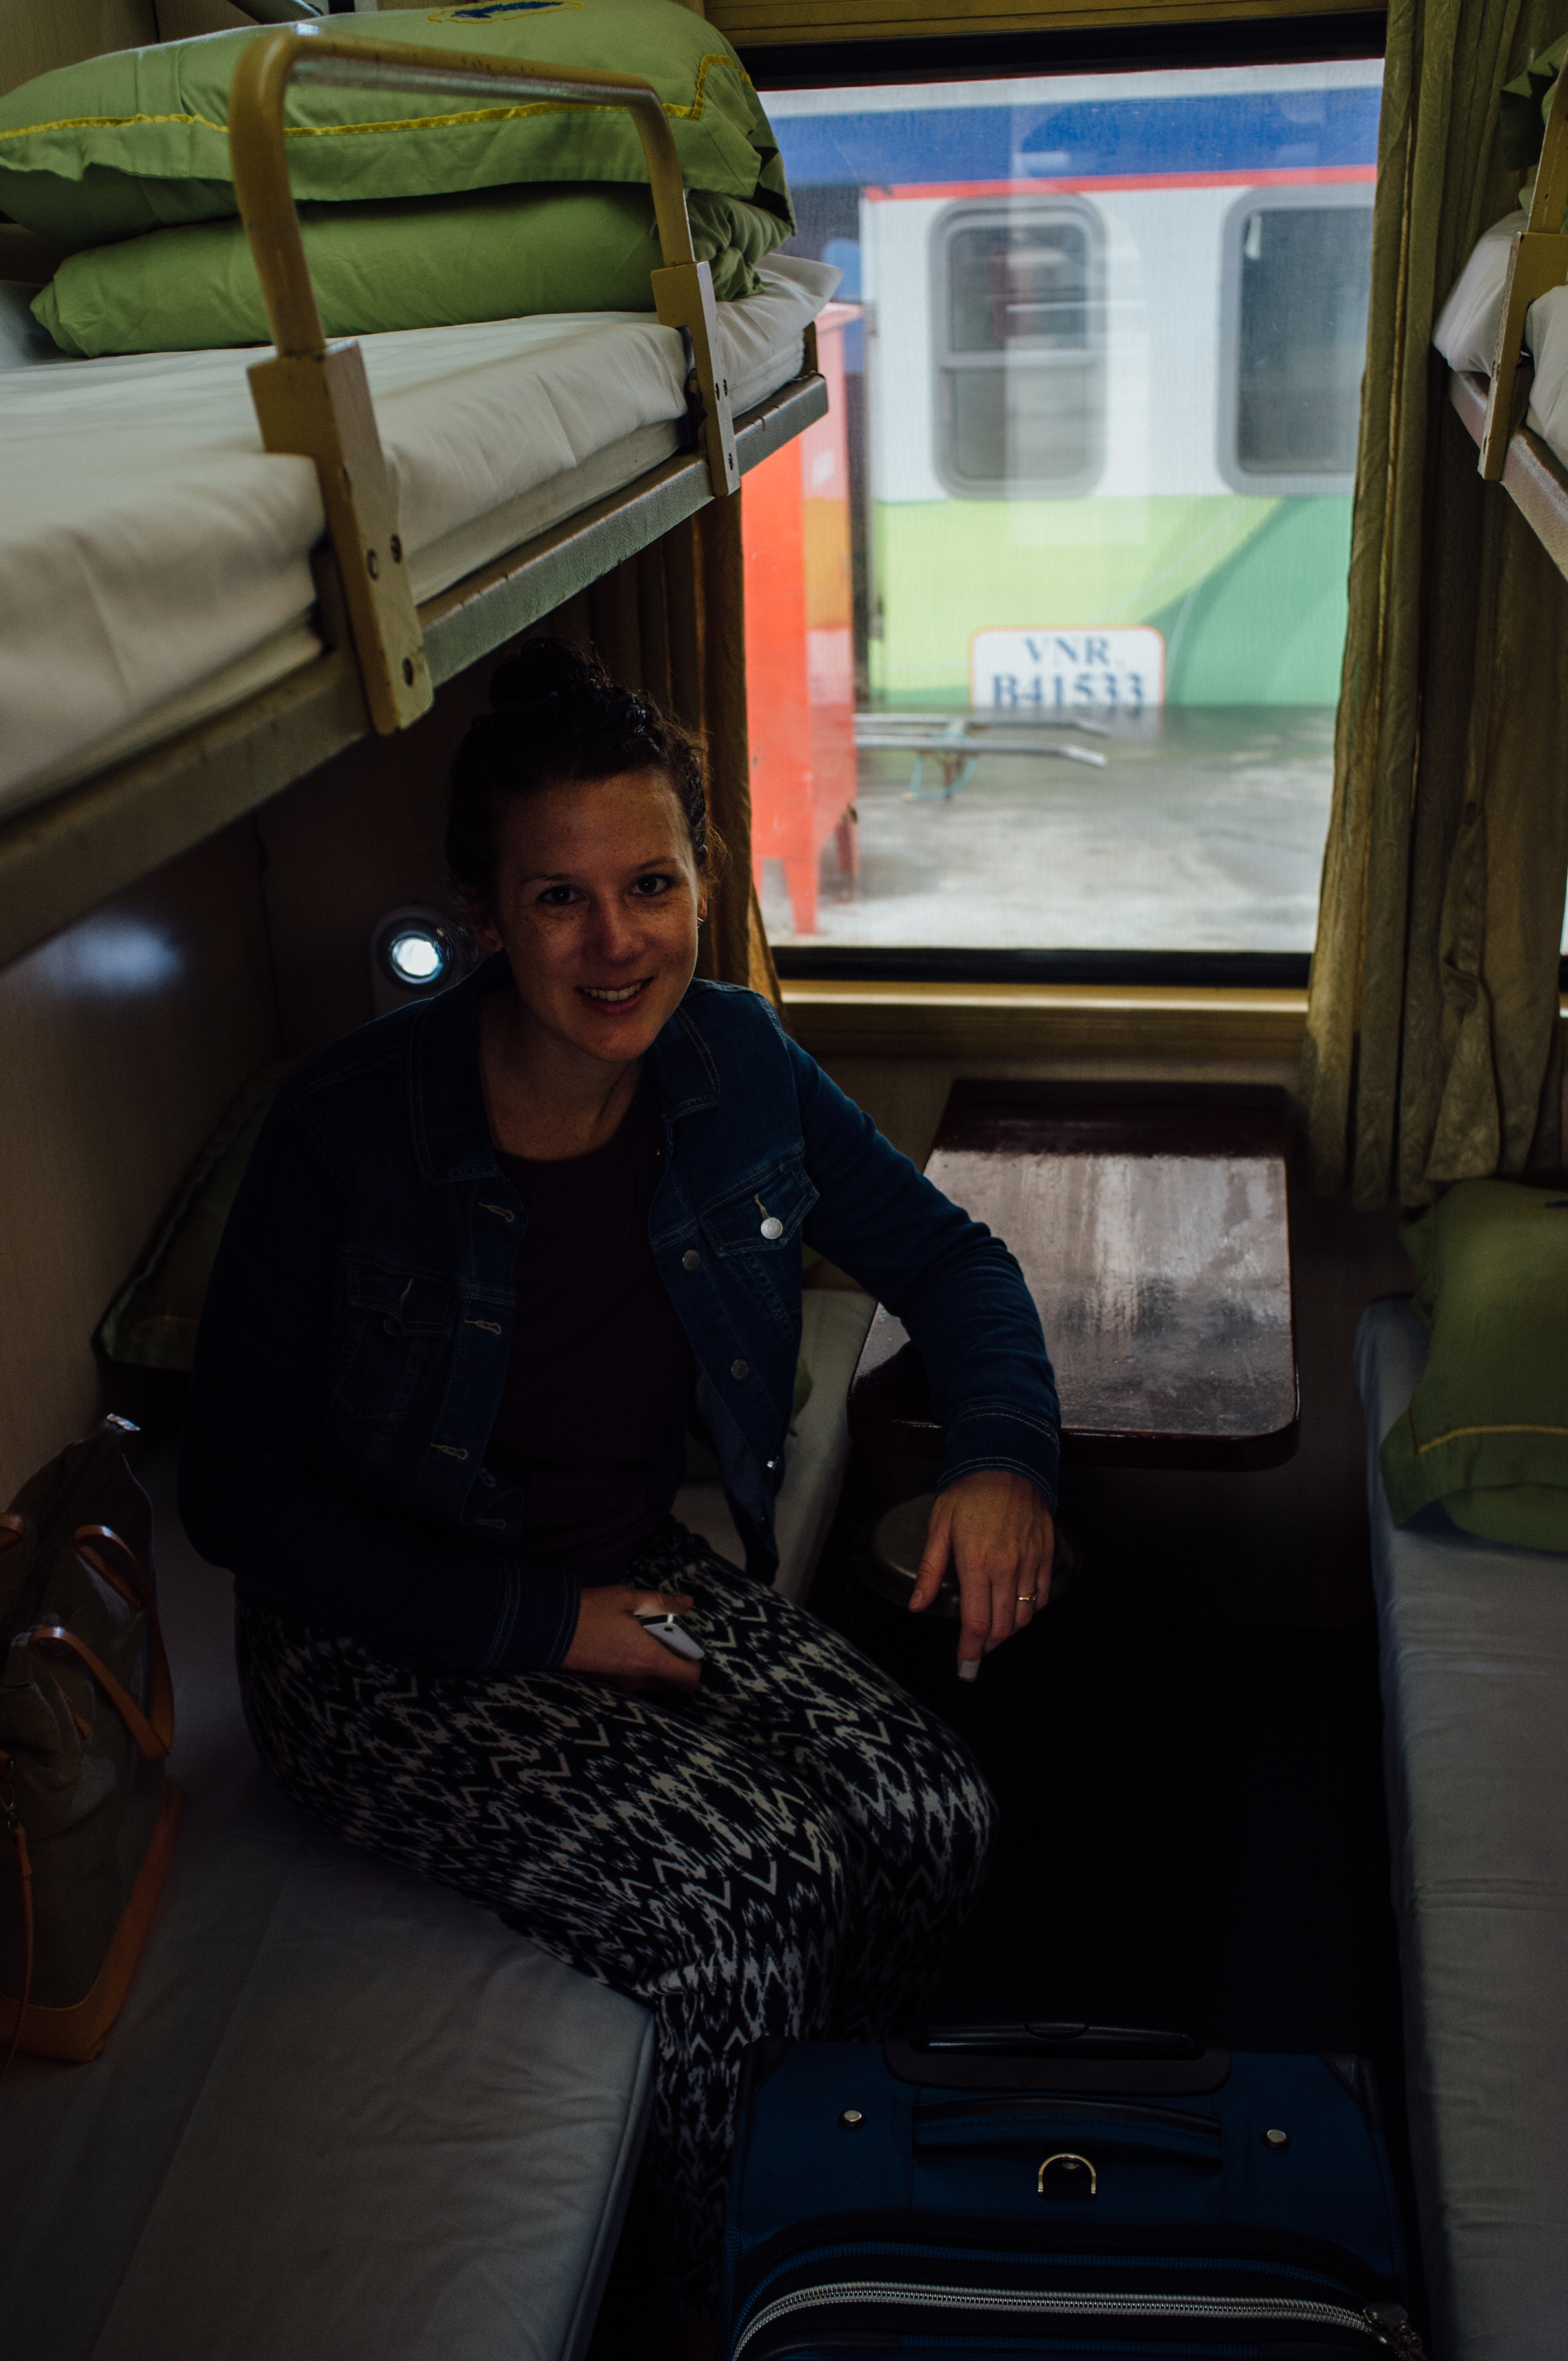 In our sleeper car on the train ride from Hanoi